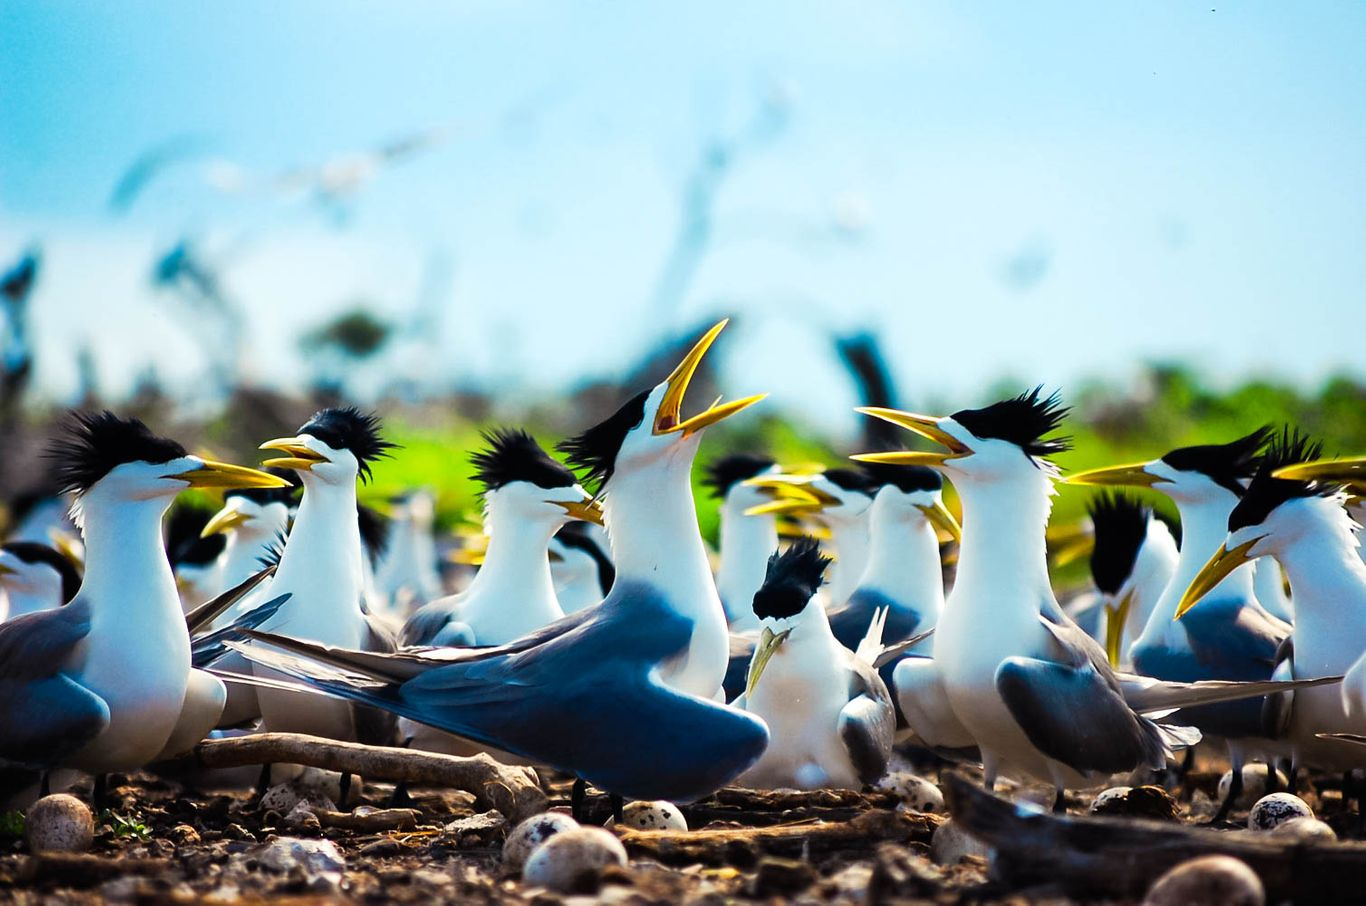 A flock of black and white seabirds with yellow beaks